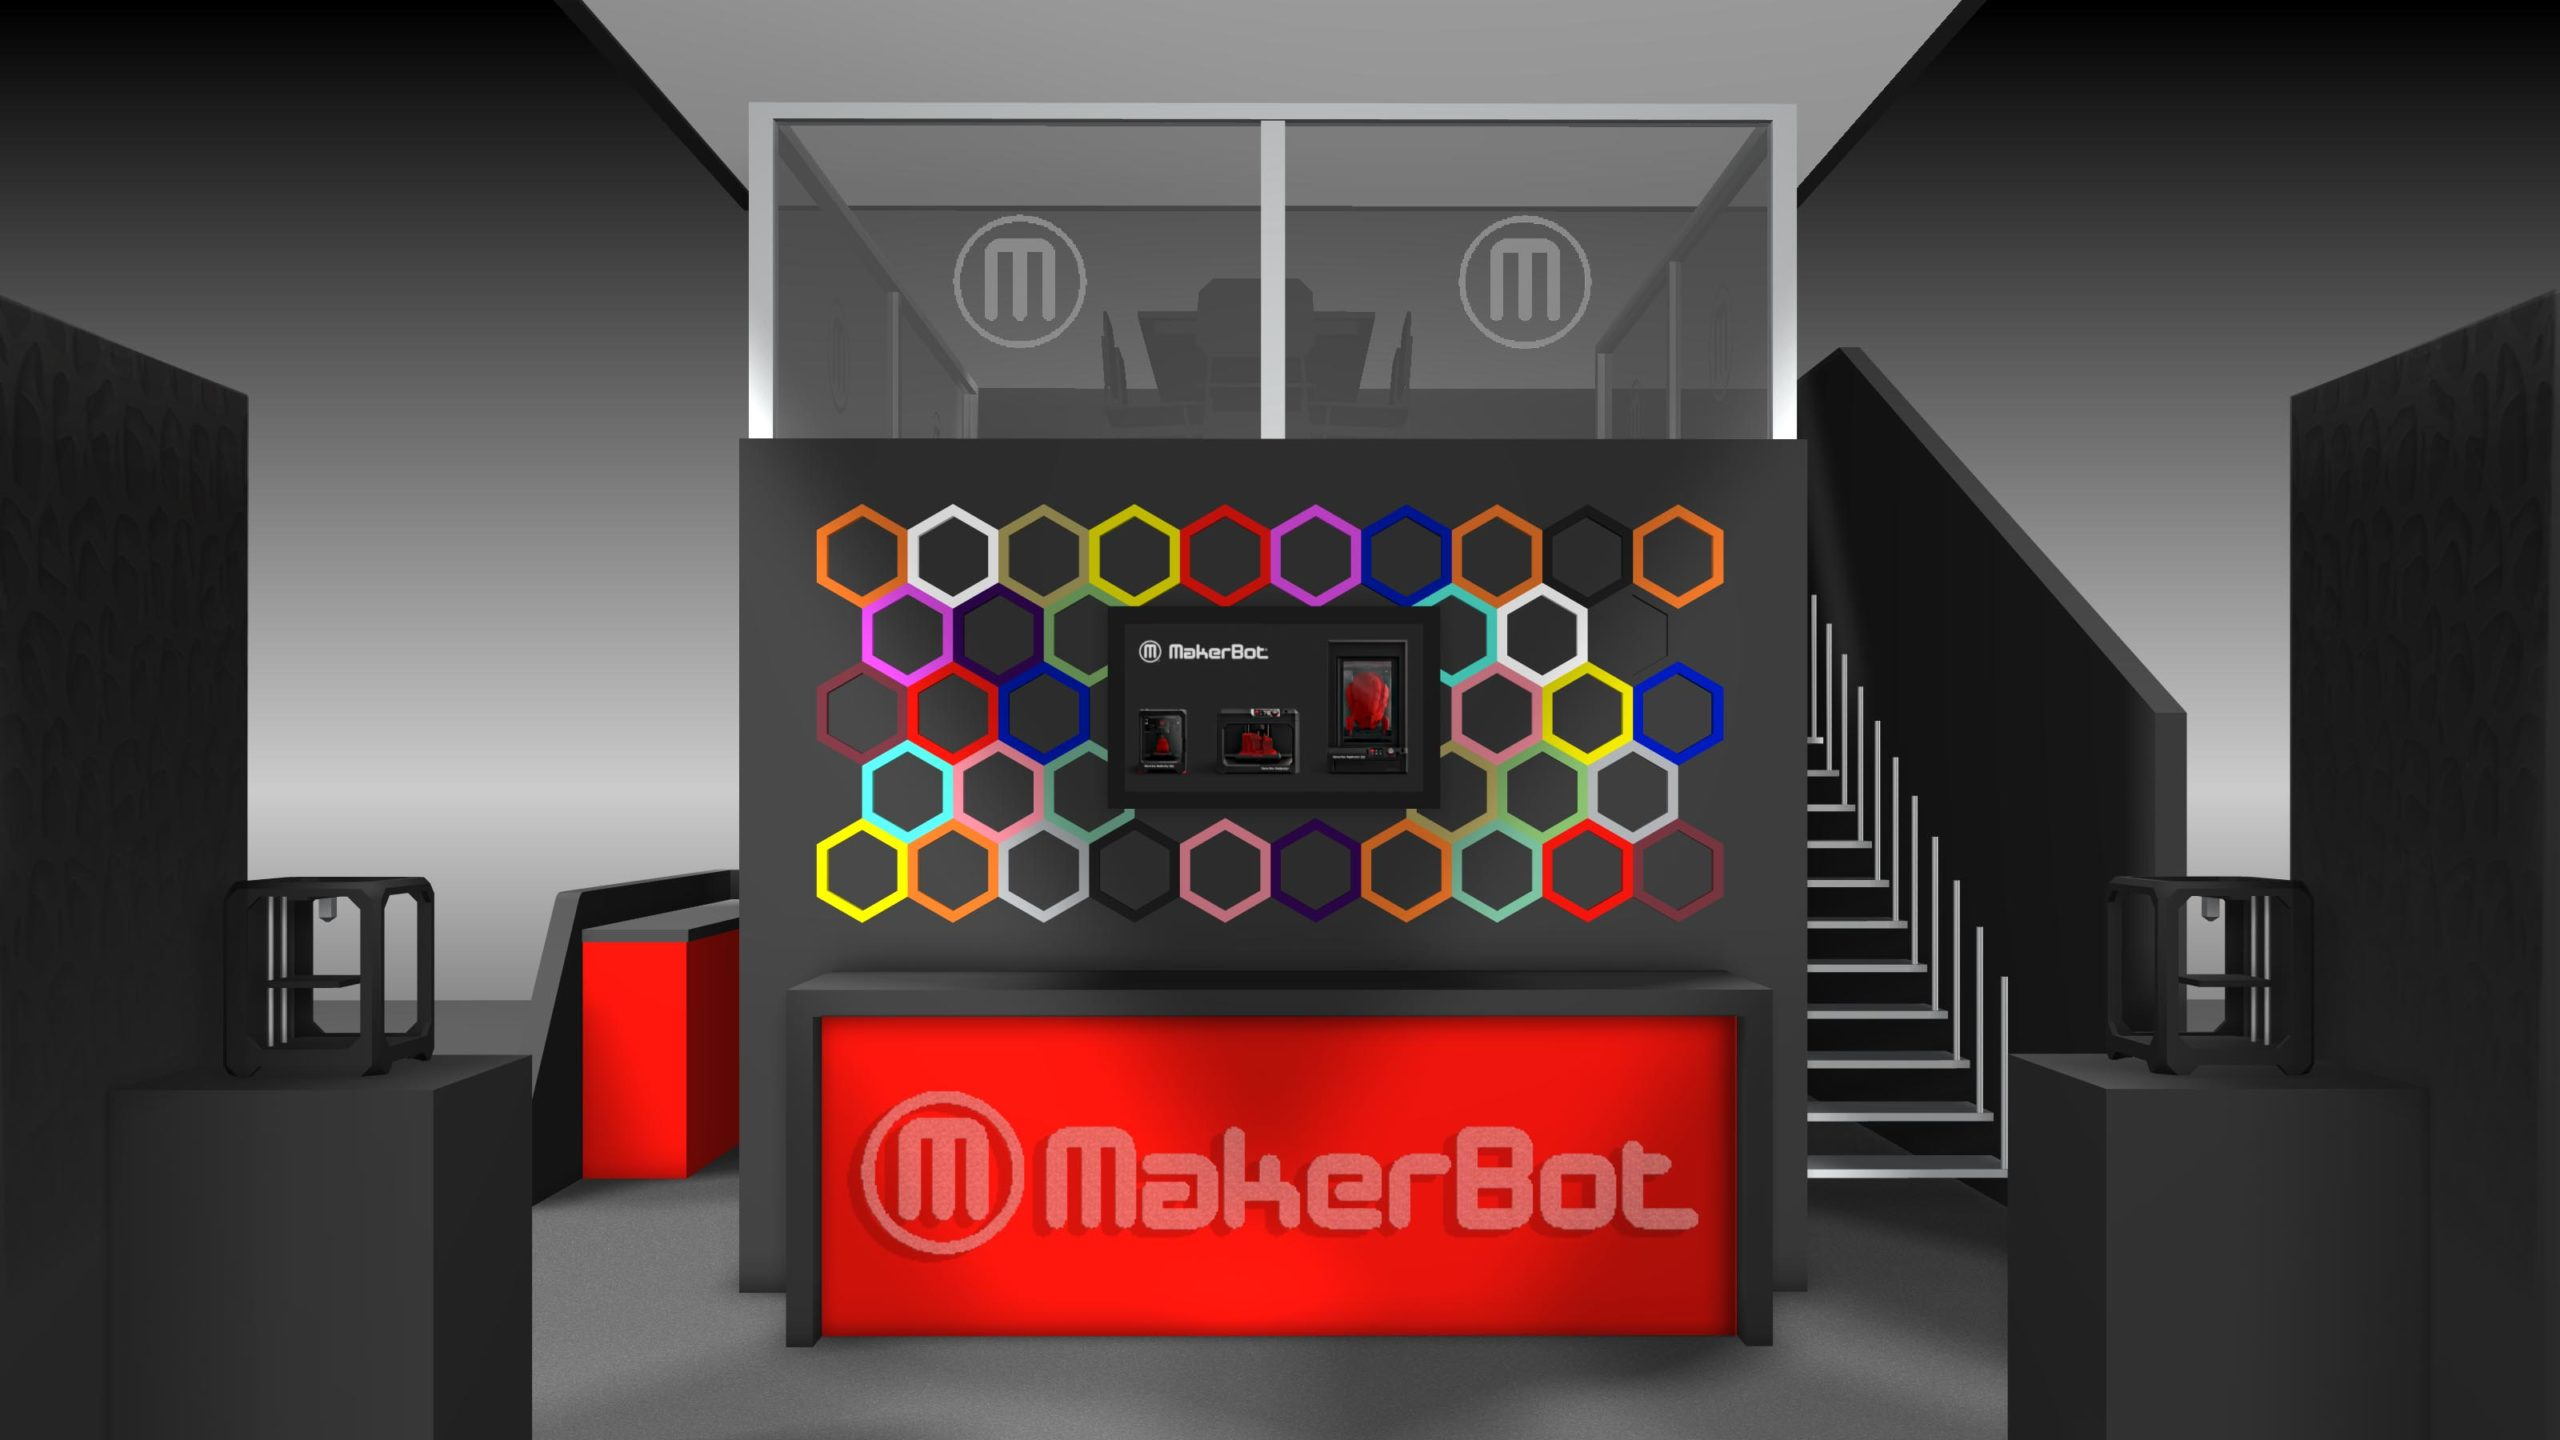 makerbot-view 129